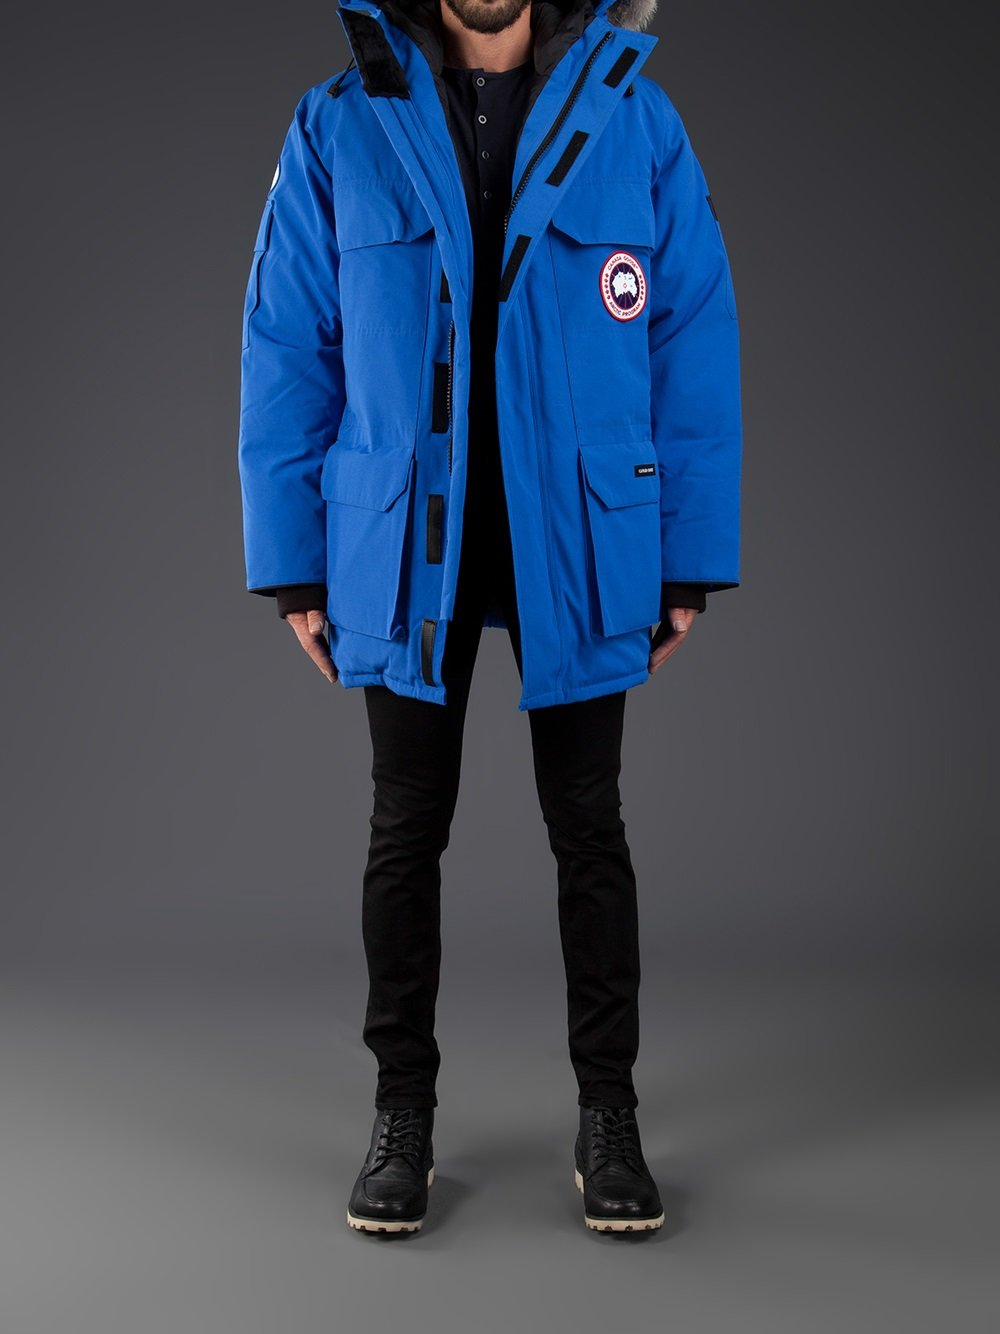 Canada Goose Expedition Pbi